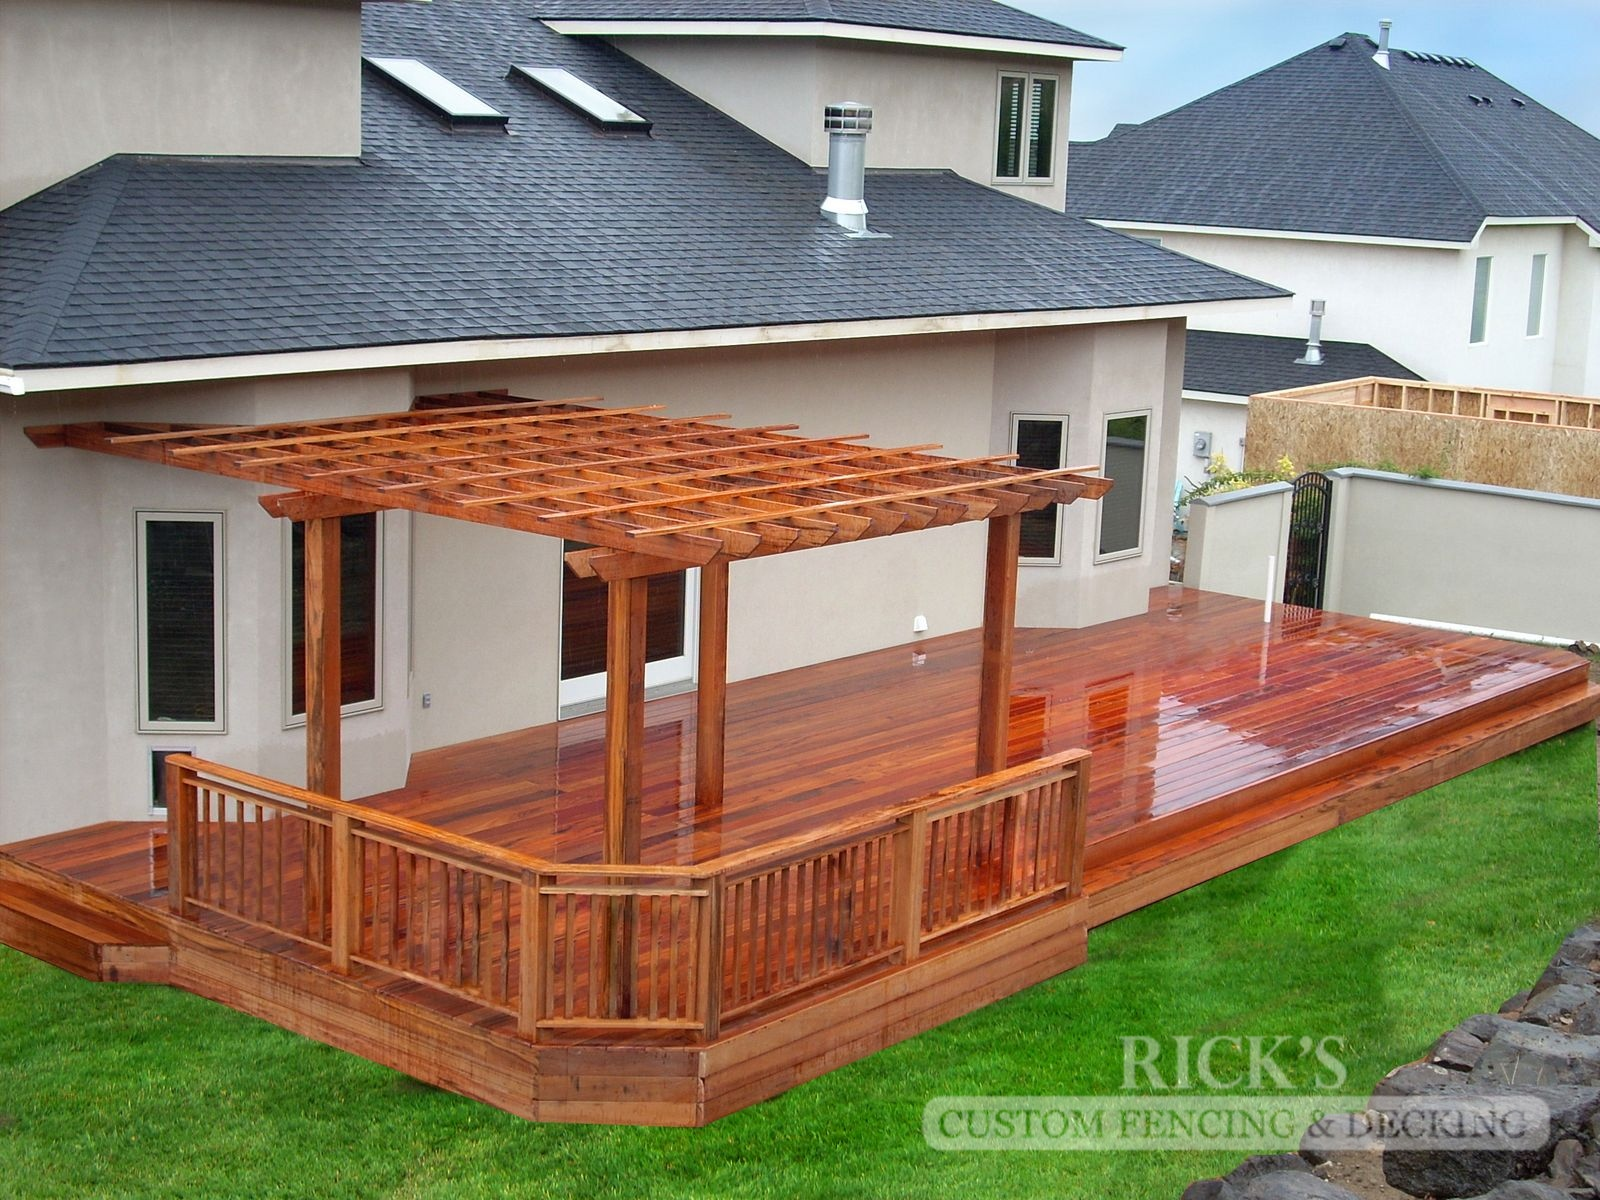 1126 - TigerWood Hardwood Decking